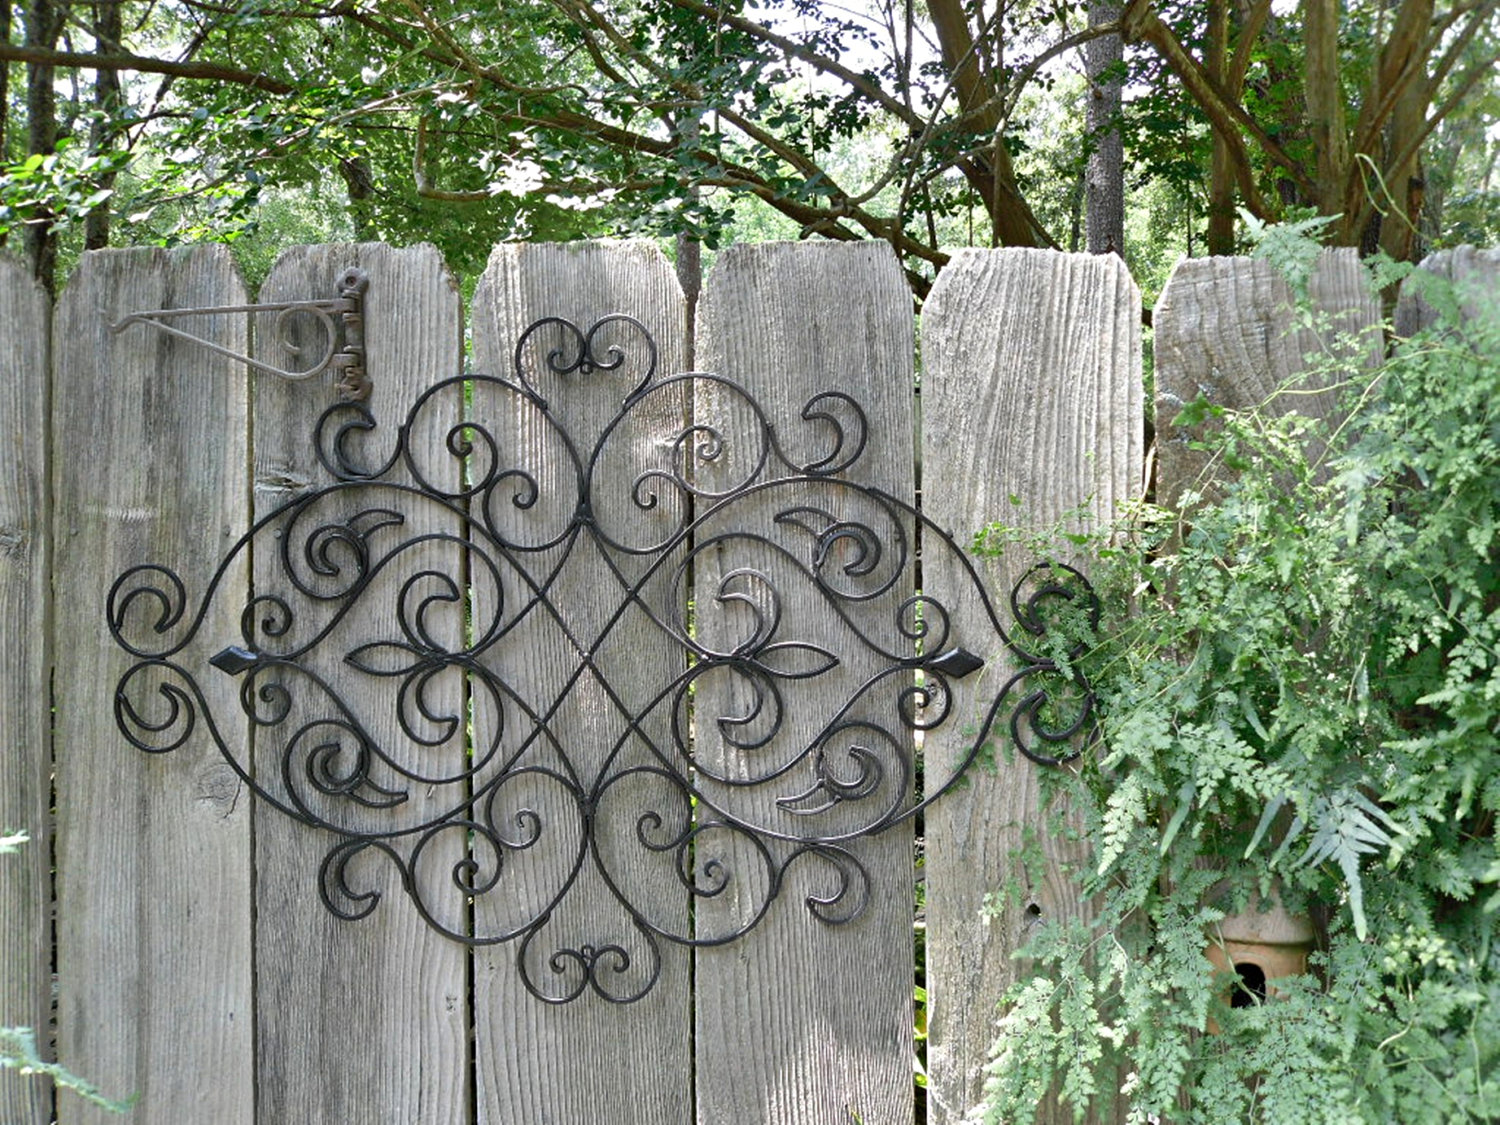 b556e37ce3 Great Wrought Iron Wall Decor | Royals Courage : Concepts Wrought ...